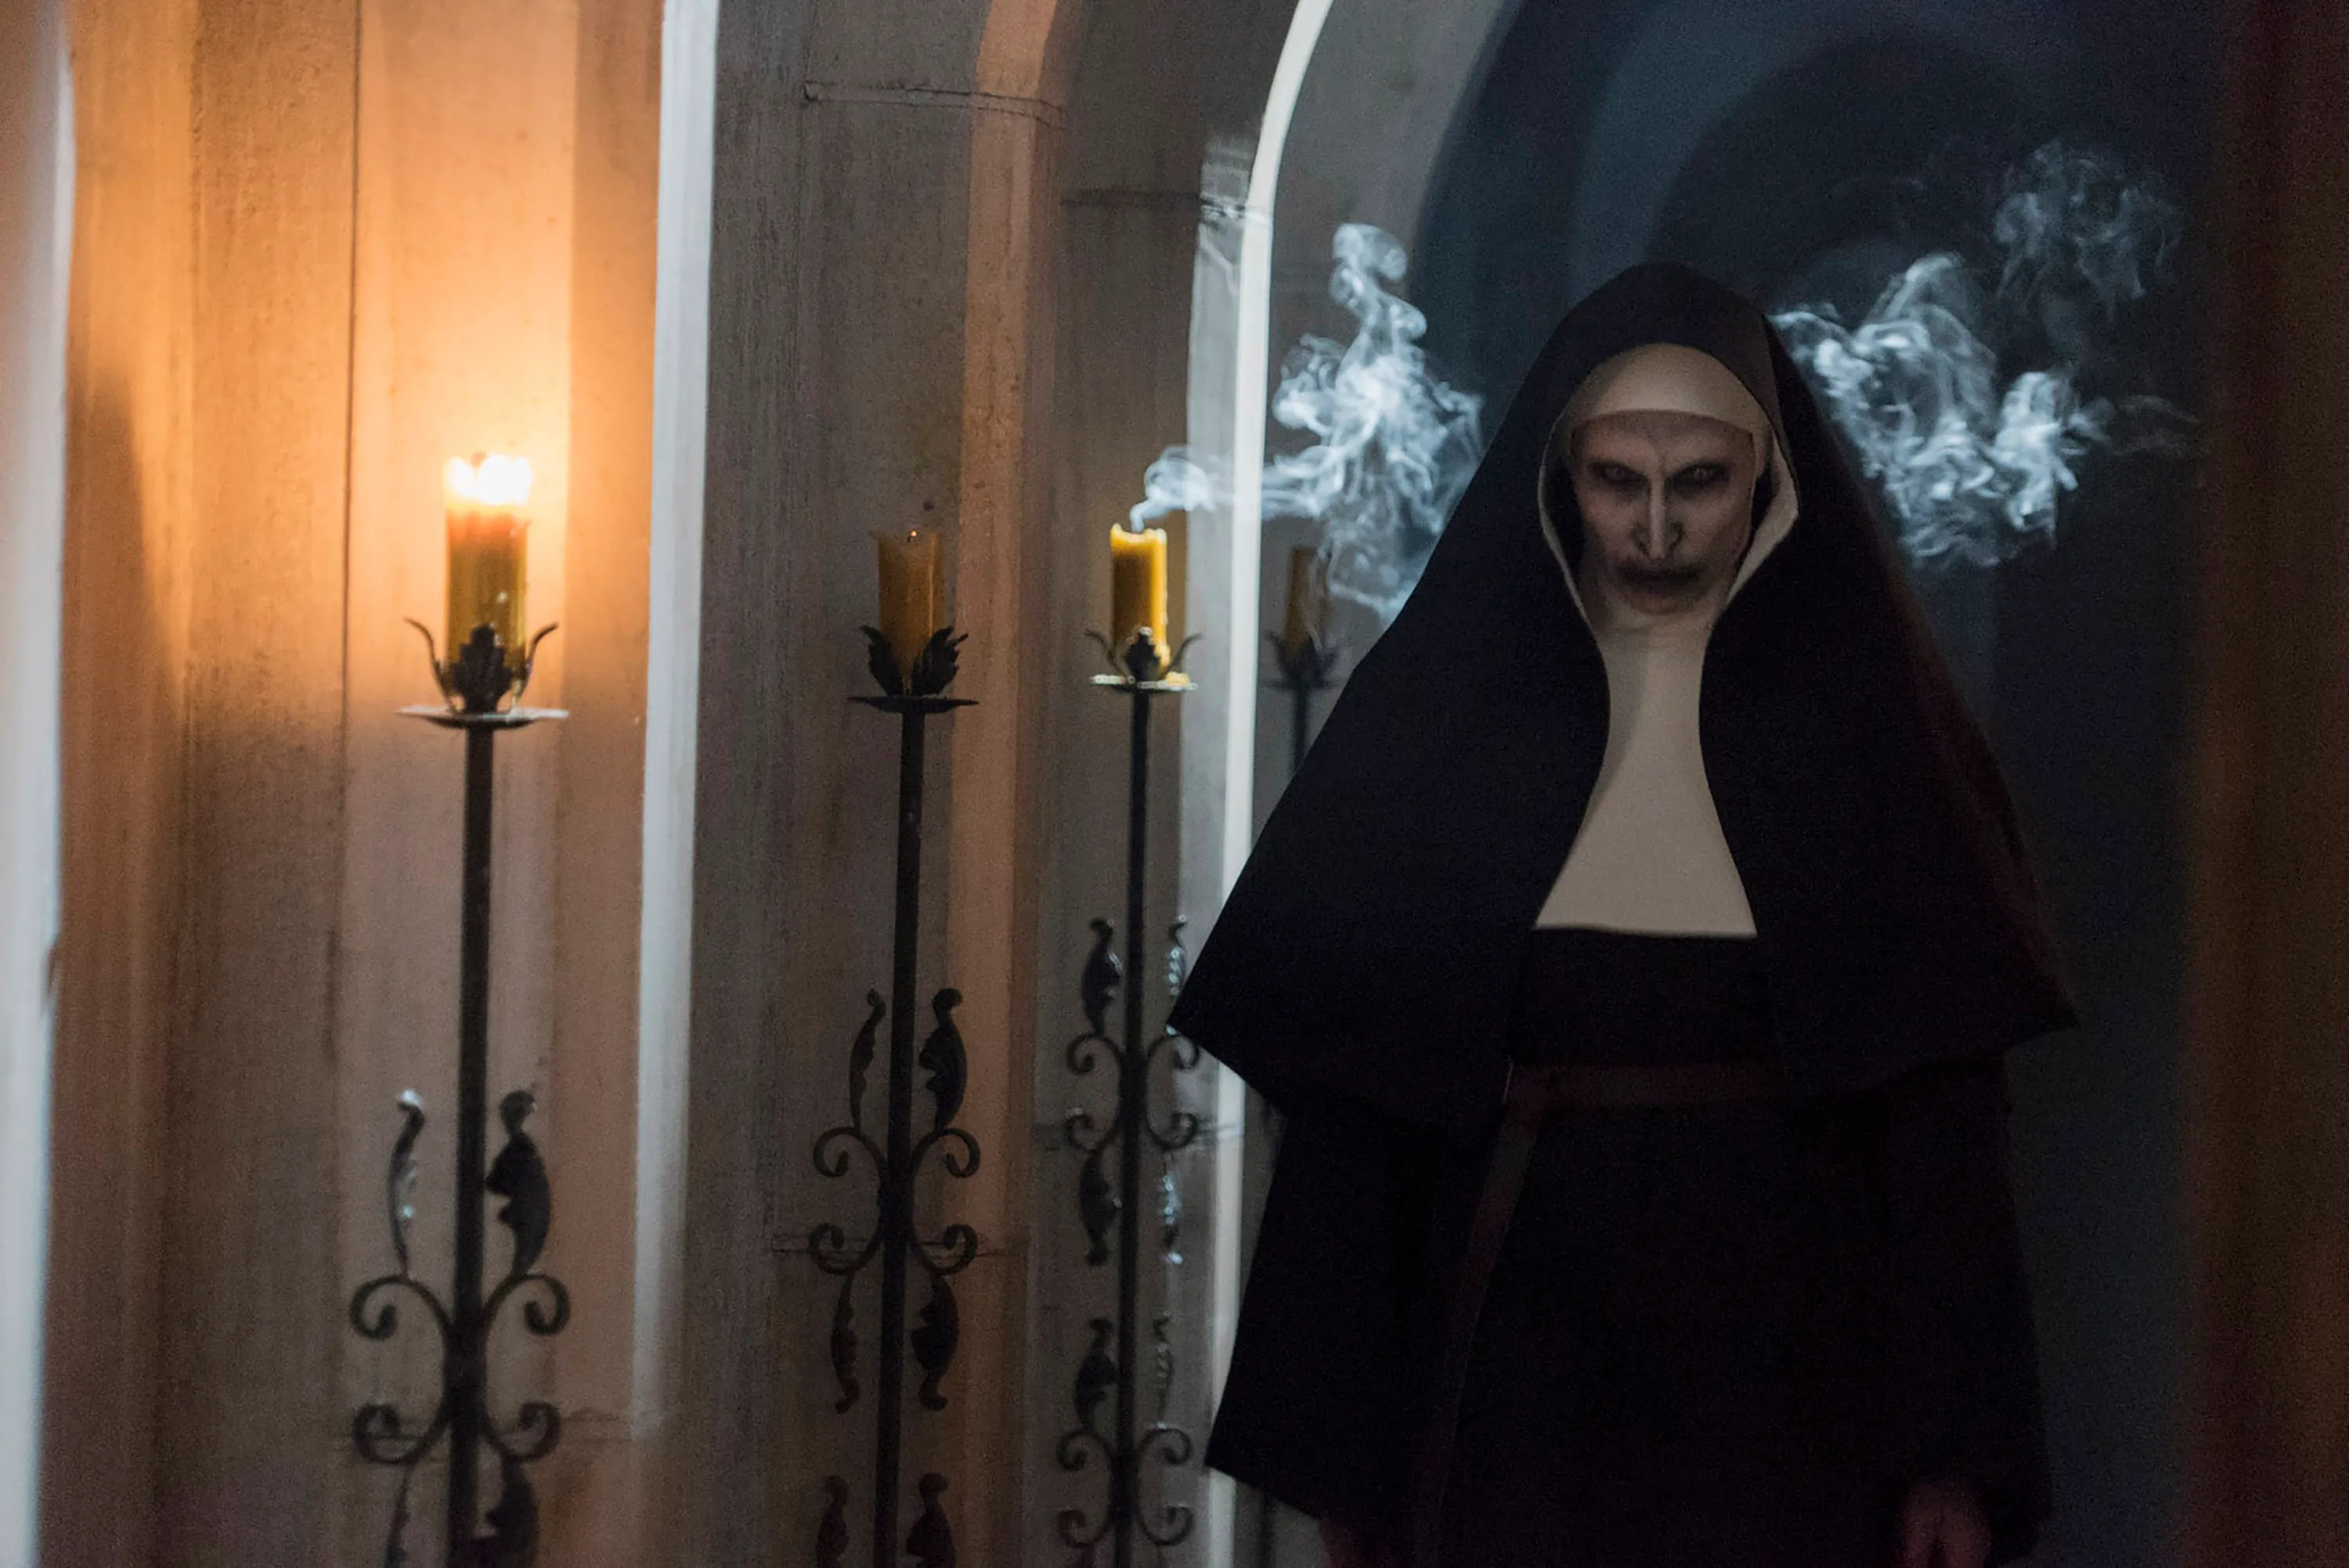 Candle Wallpaper Hd The Nun Is The Newest Haunt For Conjuring Horror Fans